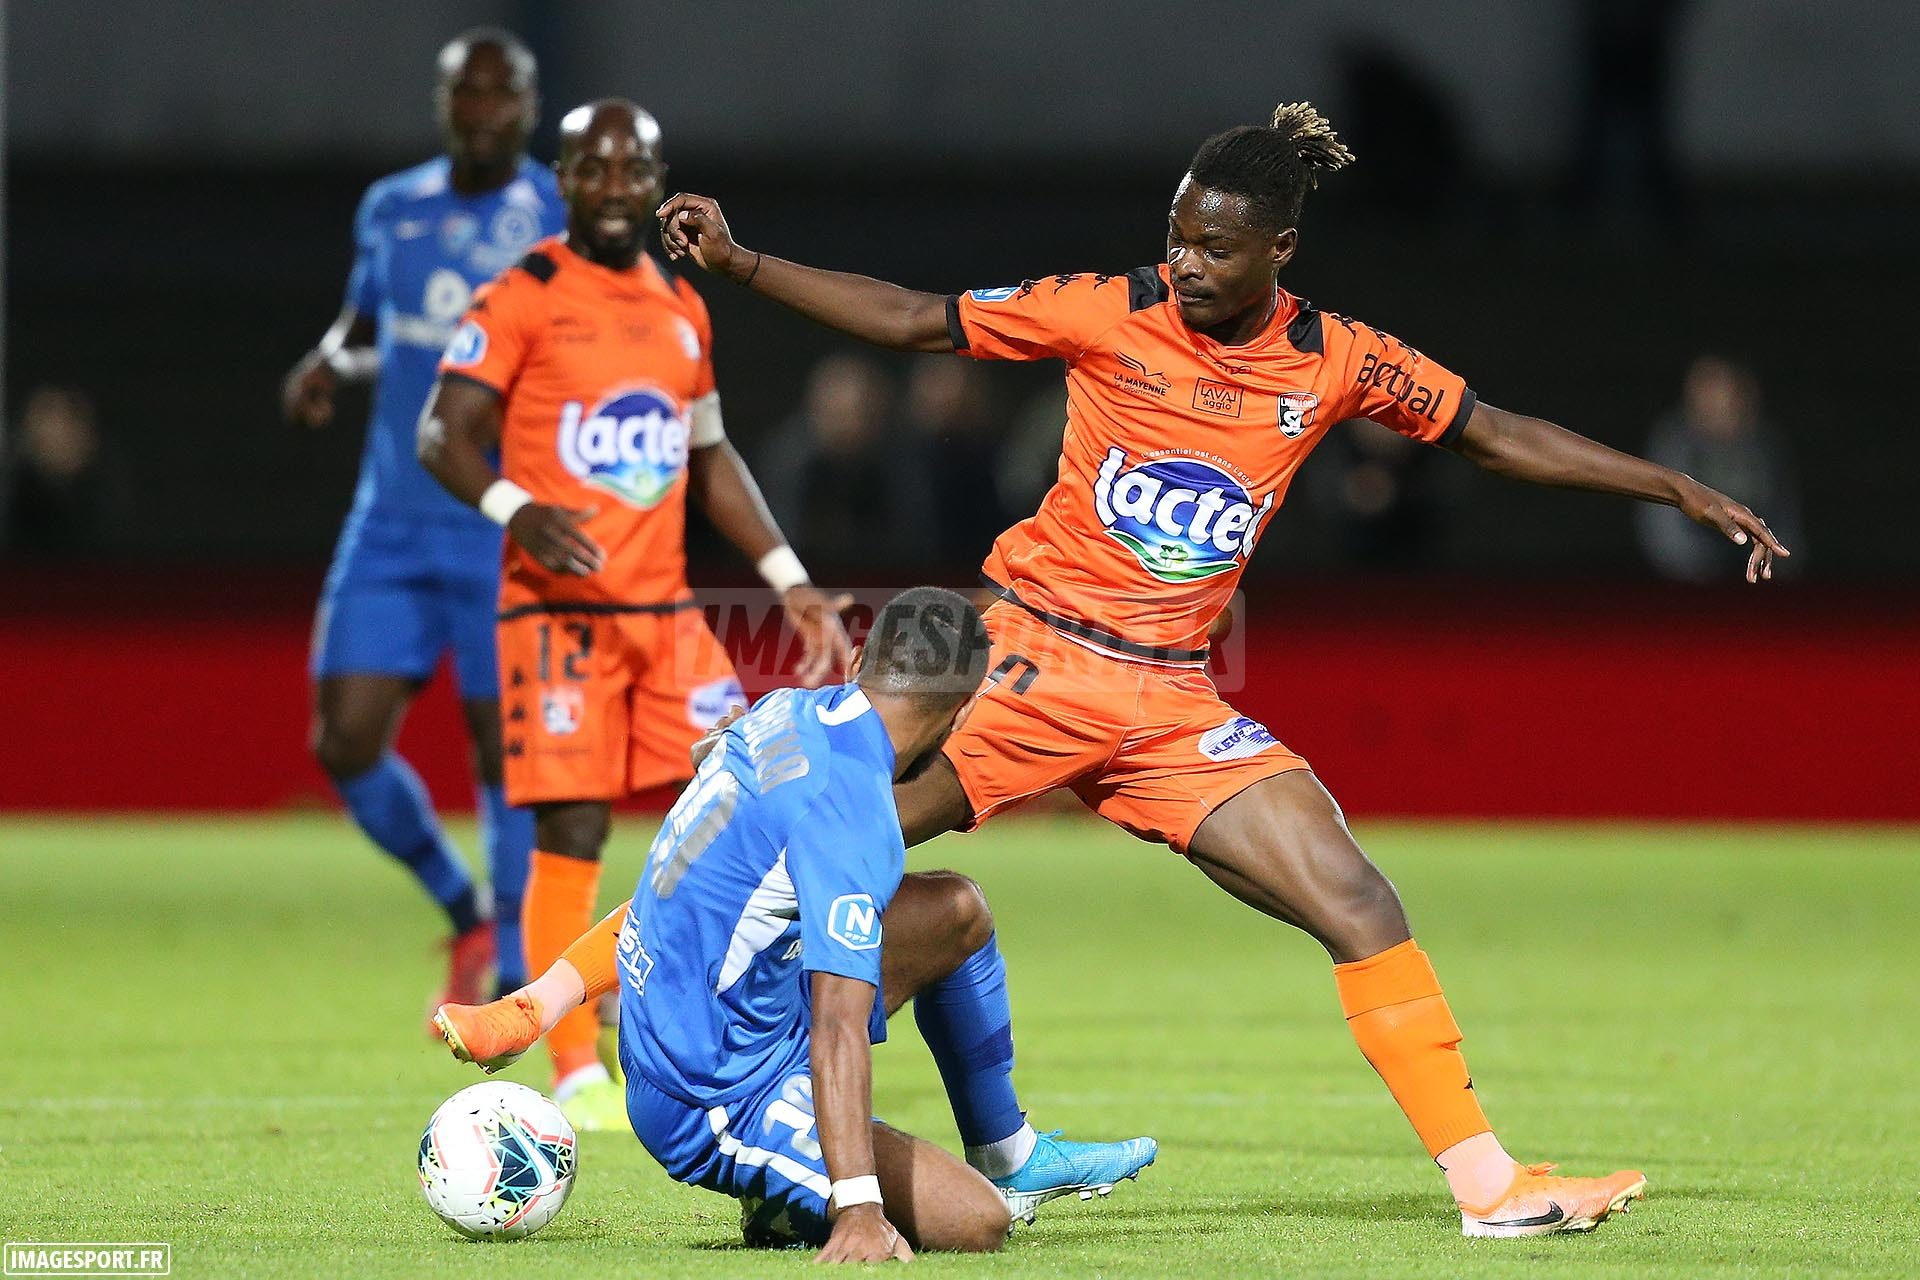 national-stade-lavallois-fbbp01-2019-2020_09